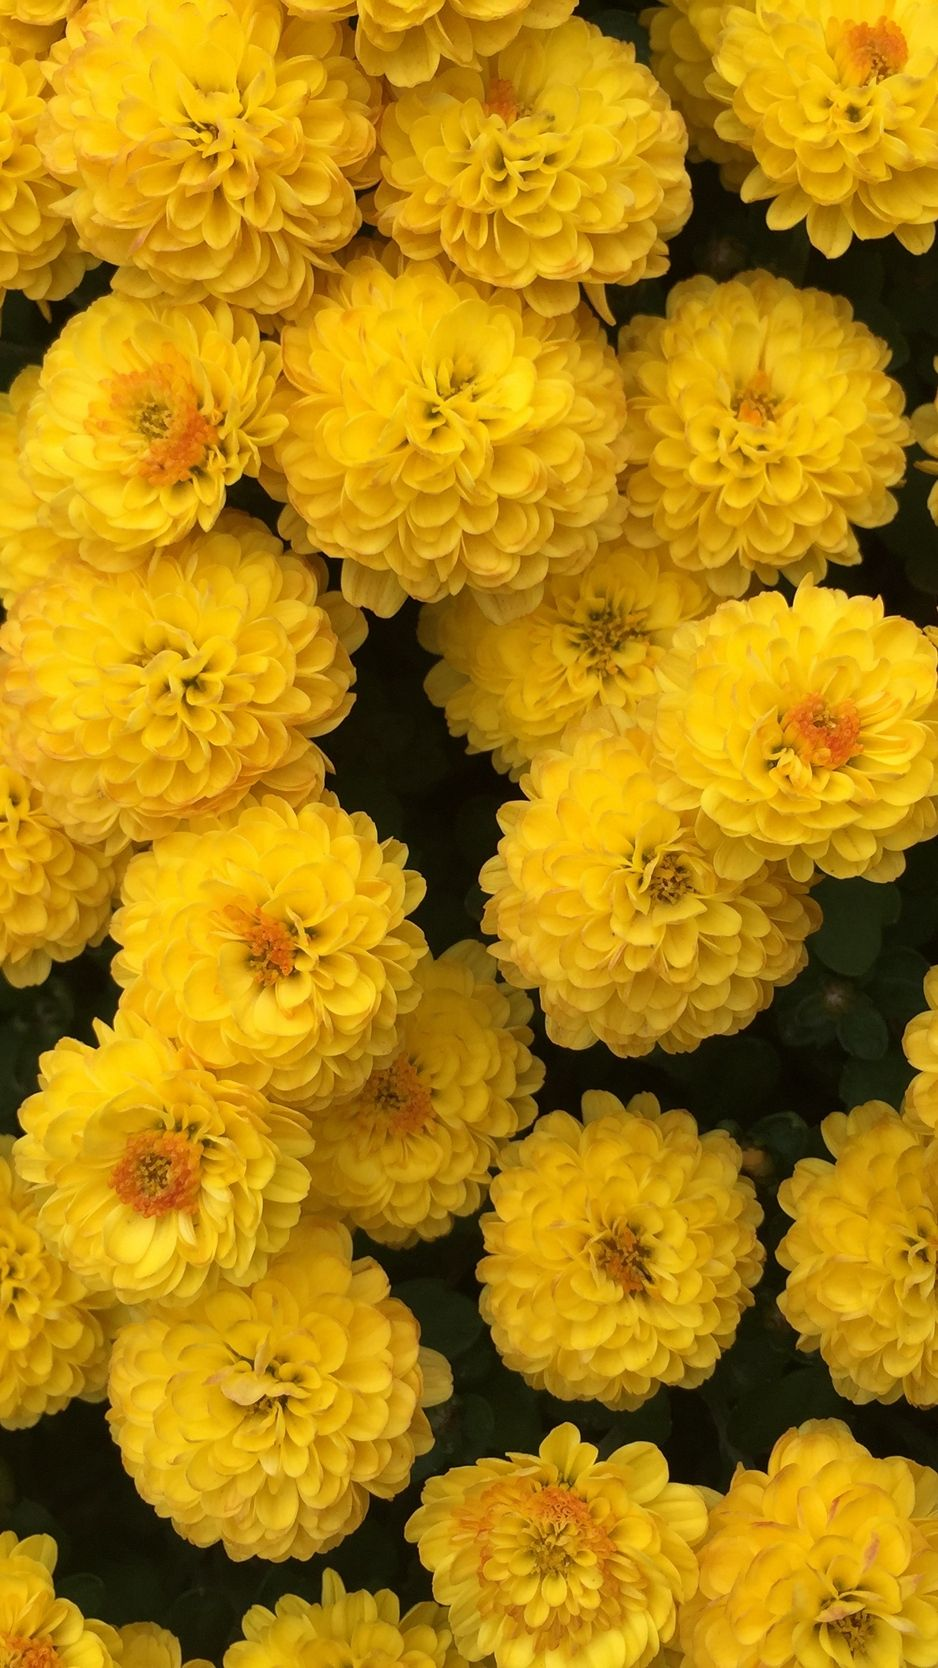 938x1668 Wallpaper Chrysanthemum, Flowers, Yellow - Iphone Xr ...